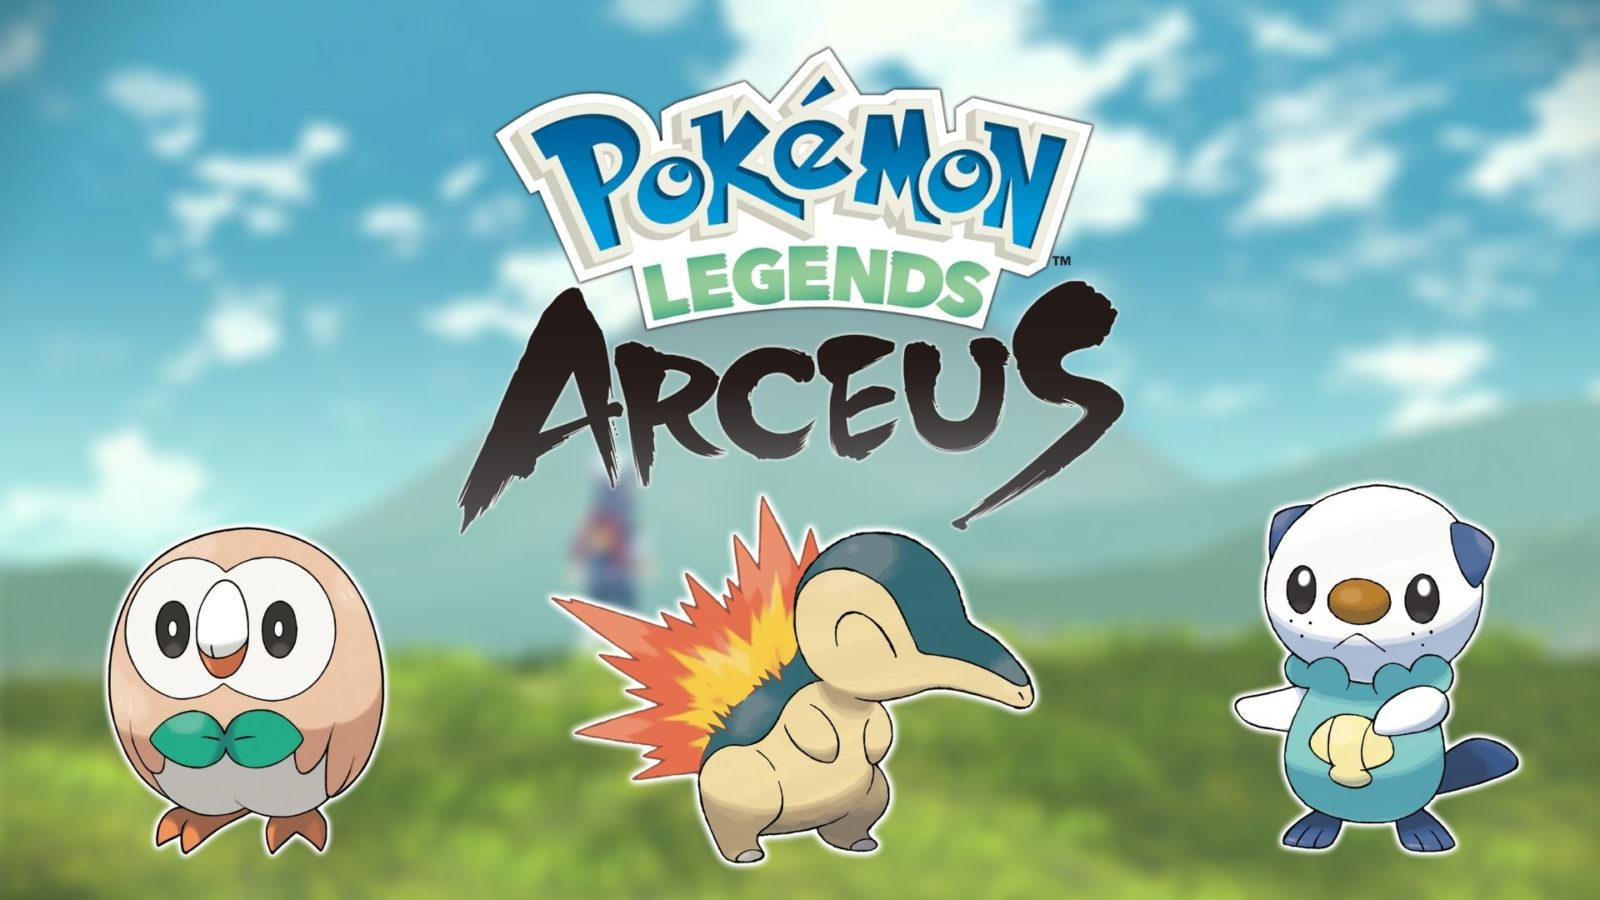 Pokémon Legends pokémon confirmados